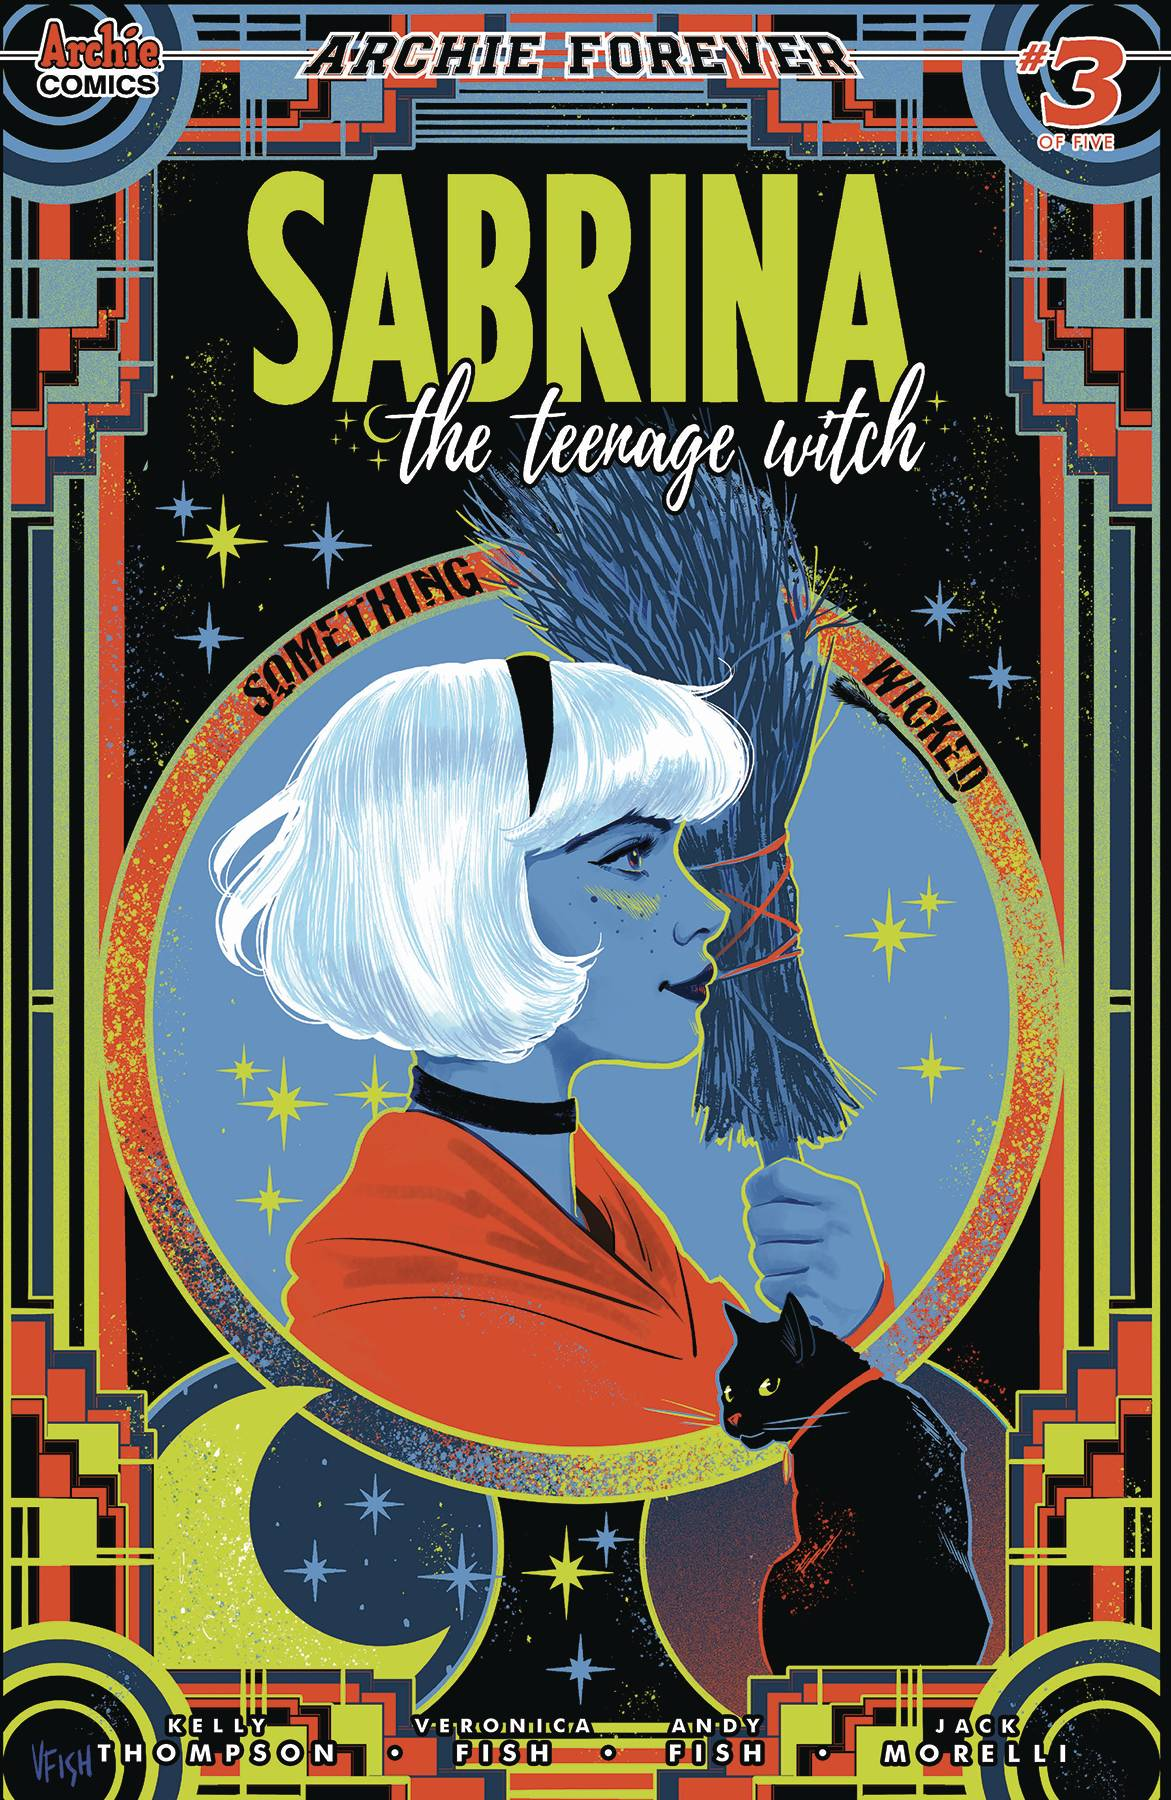 SABRINA SOMETHING WICKED #3 (OF 5) CVR A FISH